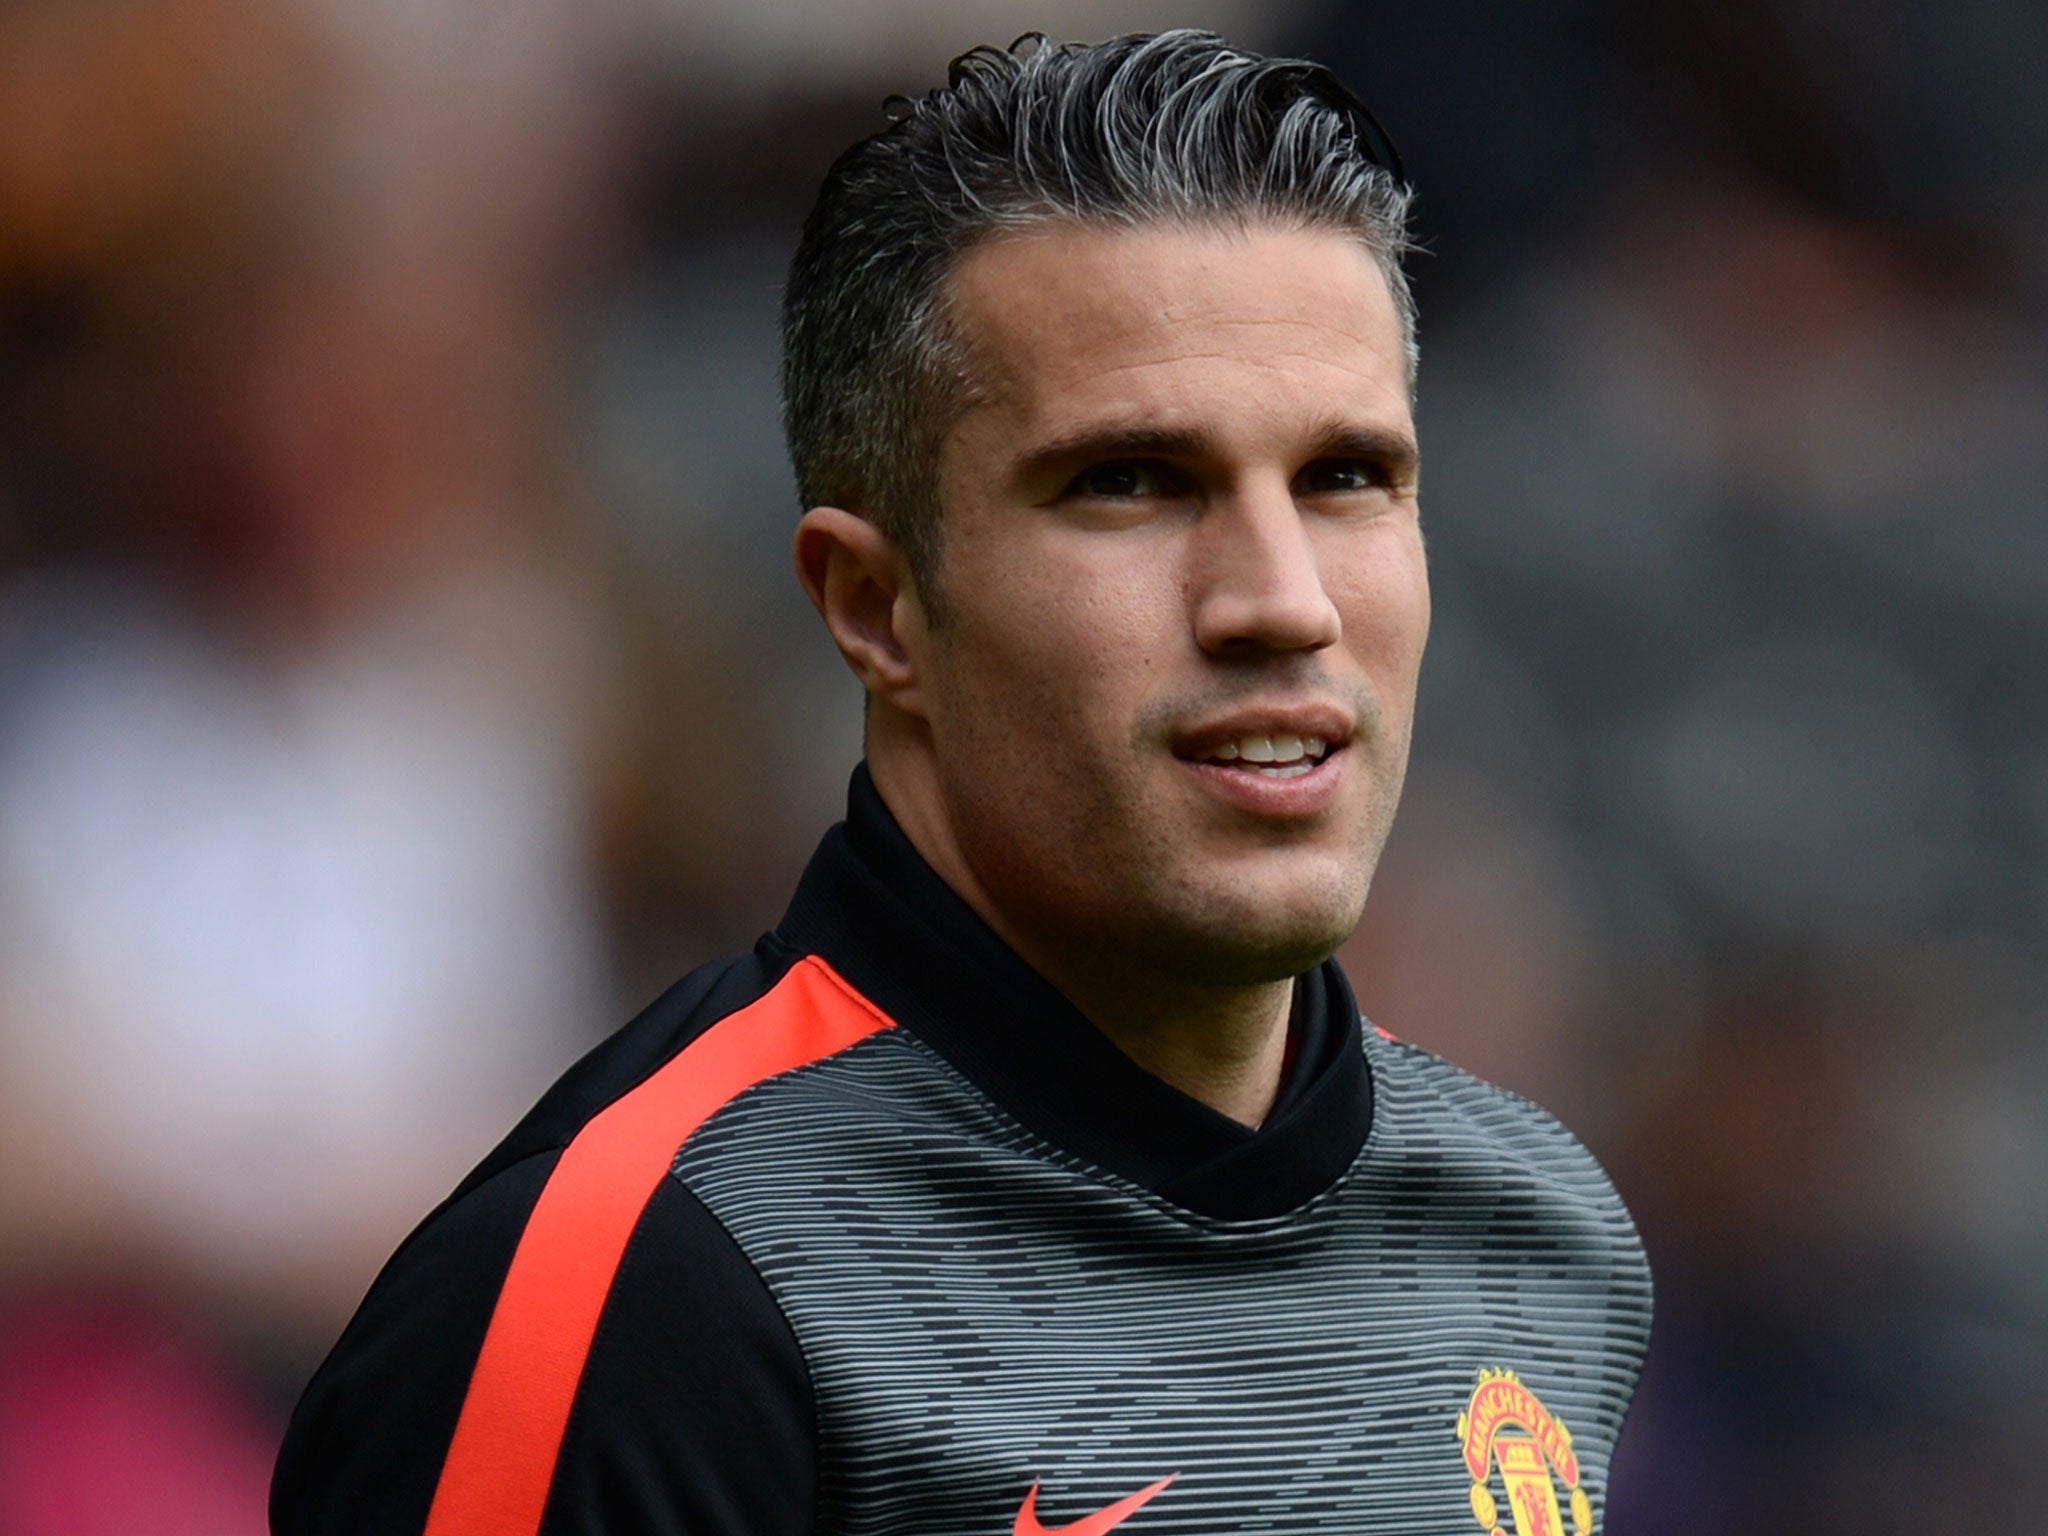 robin van persie has not agreed terms with fenerbahce and man united logo pictures manchester united logo hd pictures